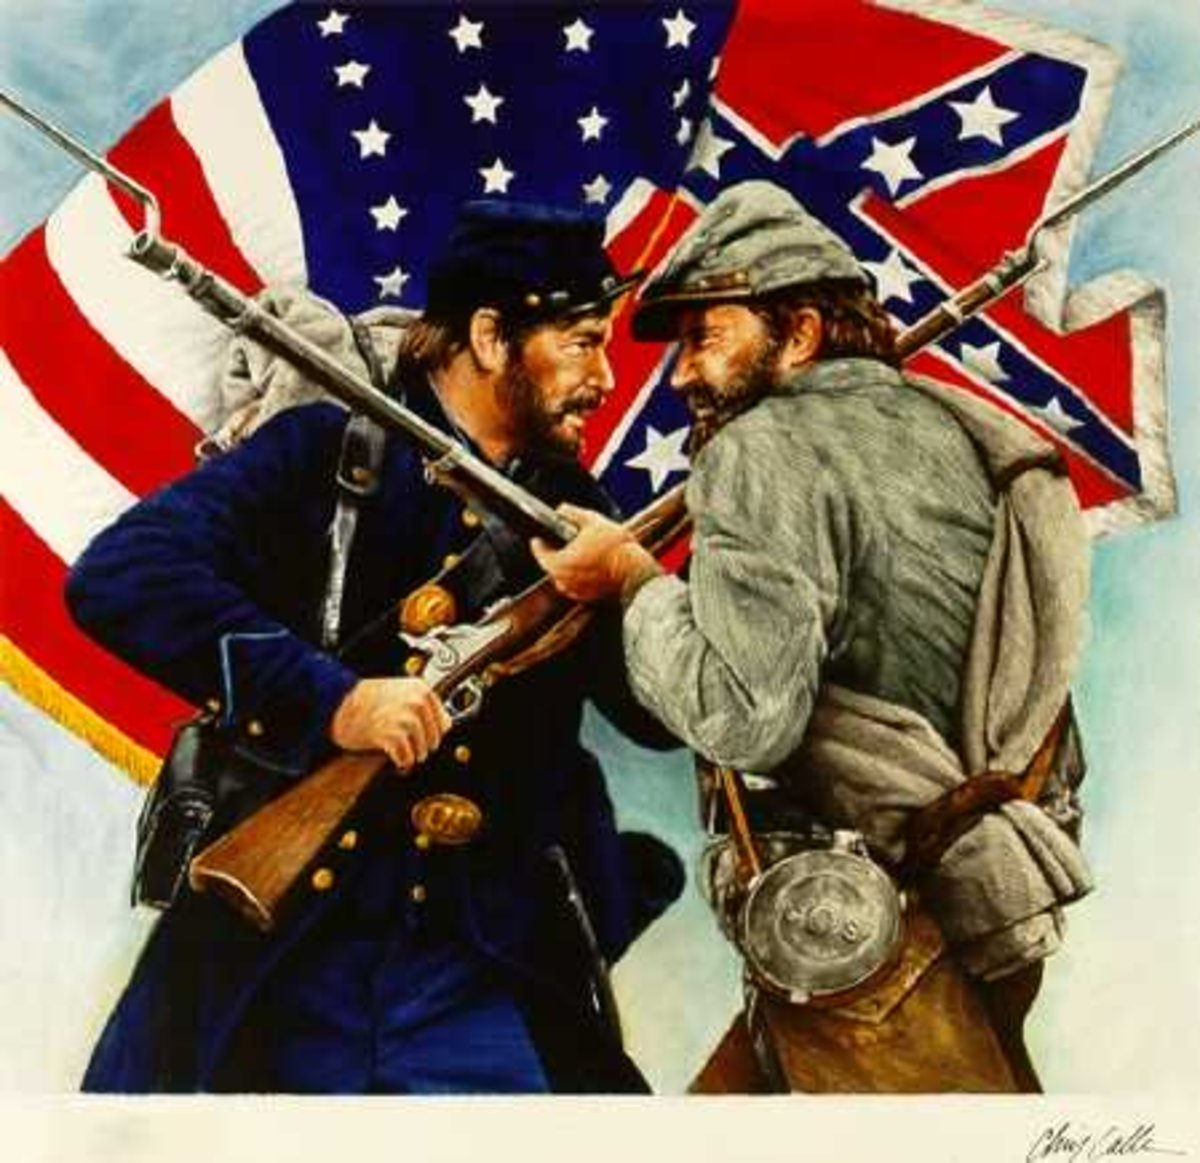 the-american-civil-war-in-a-nutshell-1861-1865